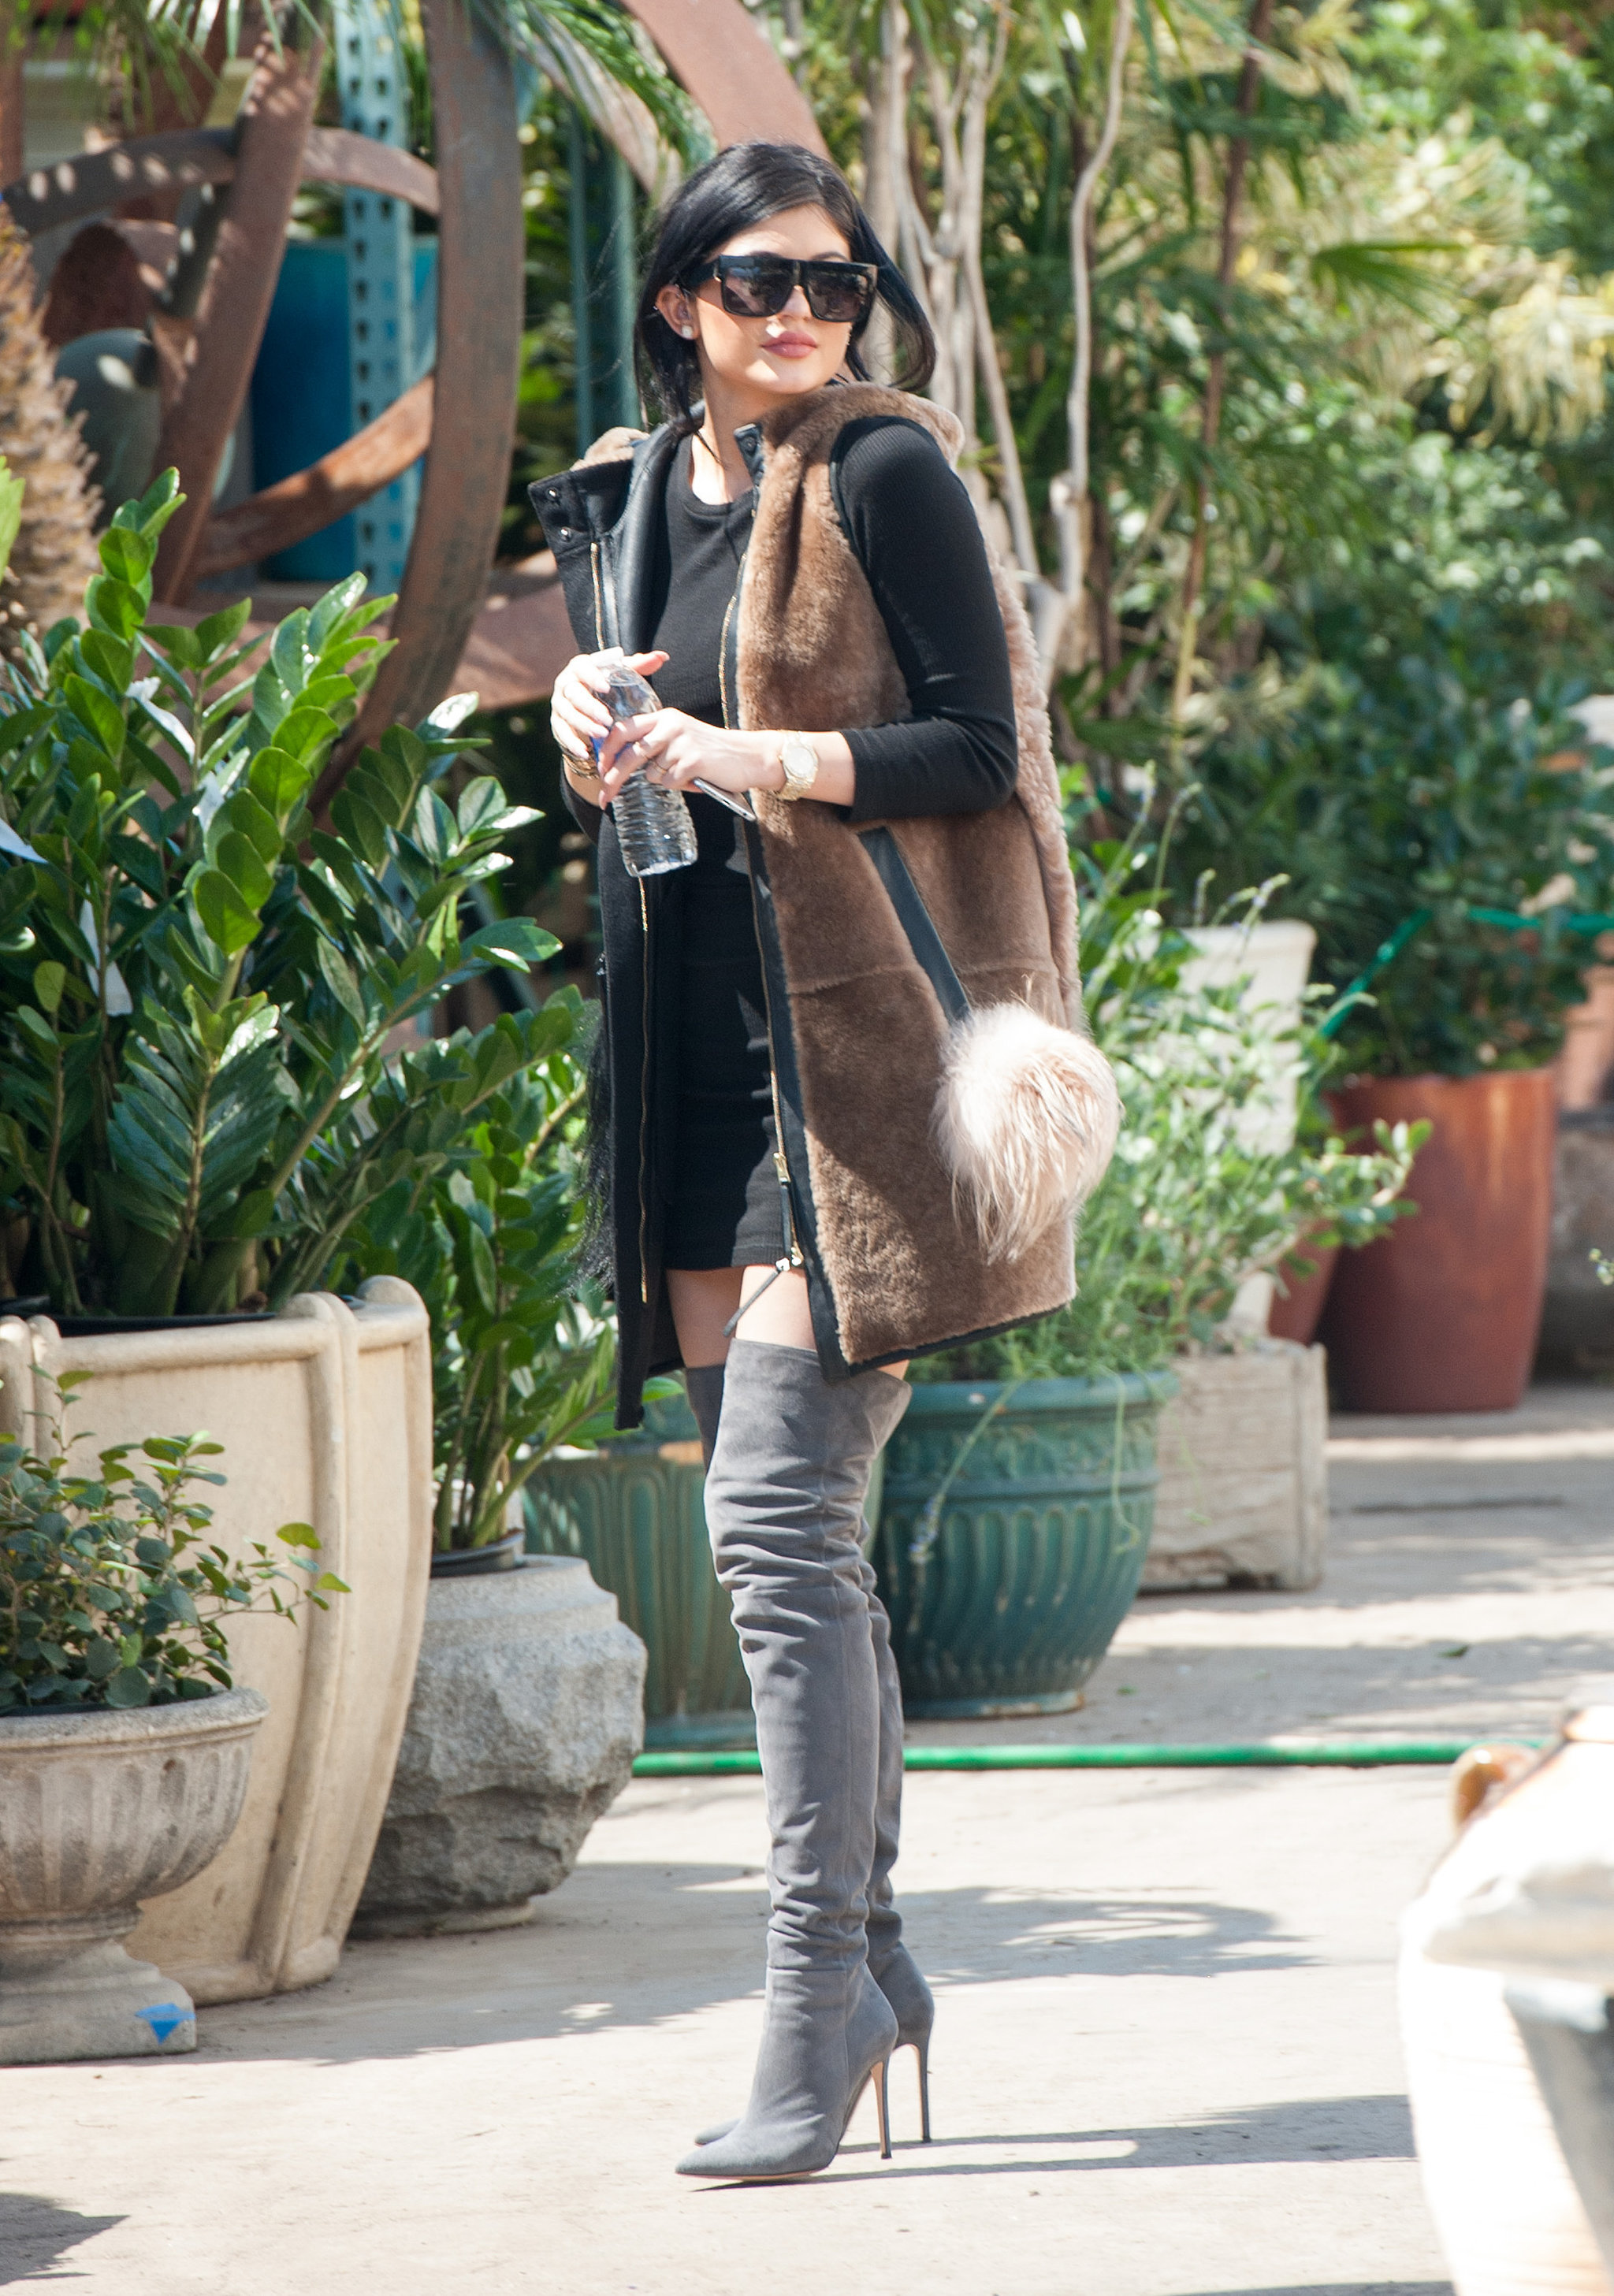 Kylie Loves Those Thigh-high Boots.